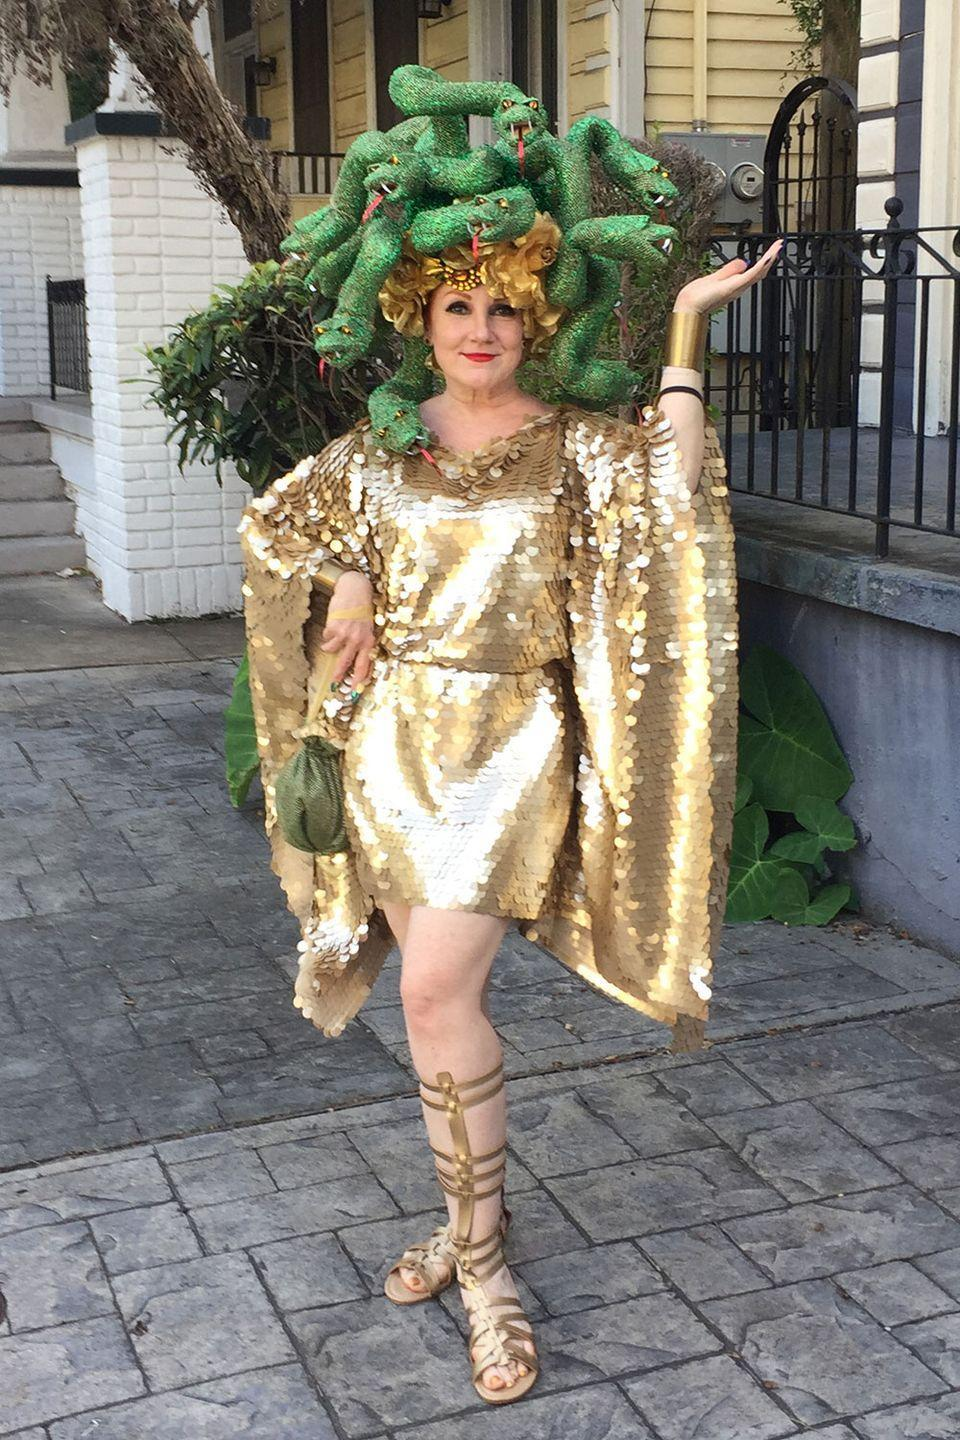 "<p>We're in awe looking at this glammed up <a href=""https://www.amazon.com/Disguise-Womens-Medusa-Costume/dp/B00J4KUYFI?tag=syn-yahoo-20&ascsubtag=%5Bartid%7C10055.g.23653854%5Bsrc%7Cyahoo-us"" rel=""nofollow noopener"" target=""_blank"" data-ylk=""slk:Medusa costume"" class=""link rapid-noclick-resp"">Medusa costume </a>from <a href=""https://www.instagram.com/nolacostumes/"" rel=""nofollow noopener"" target=""_blank"" data-ylk=""slk:a New Orleans-based designer"" class=""link rapid-noclick-resp"">a New Orleans-based designer</a>. </p>"